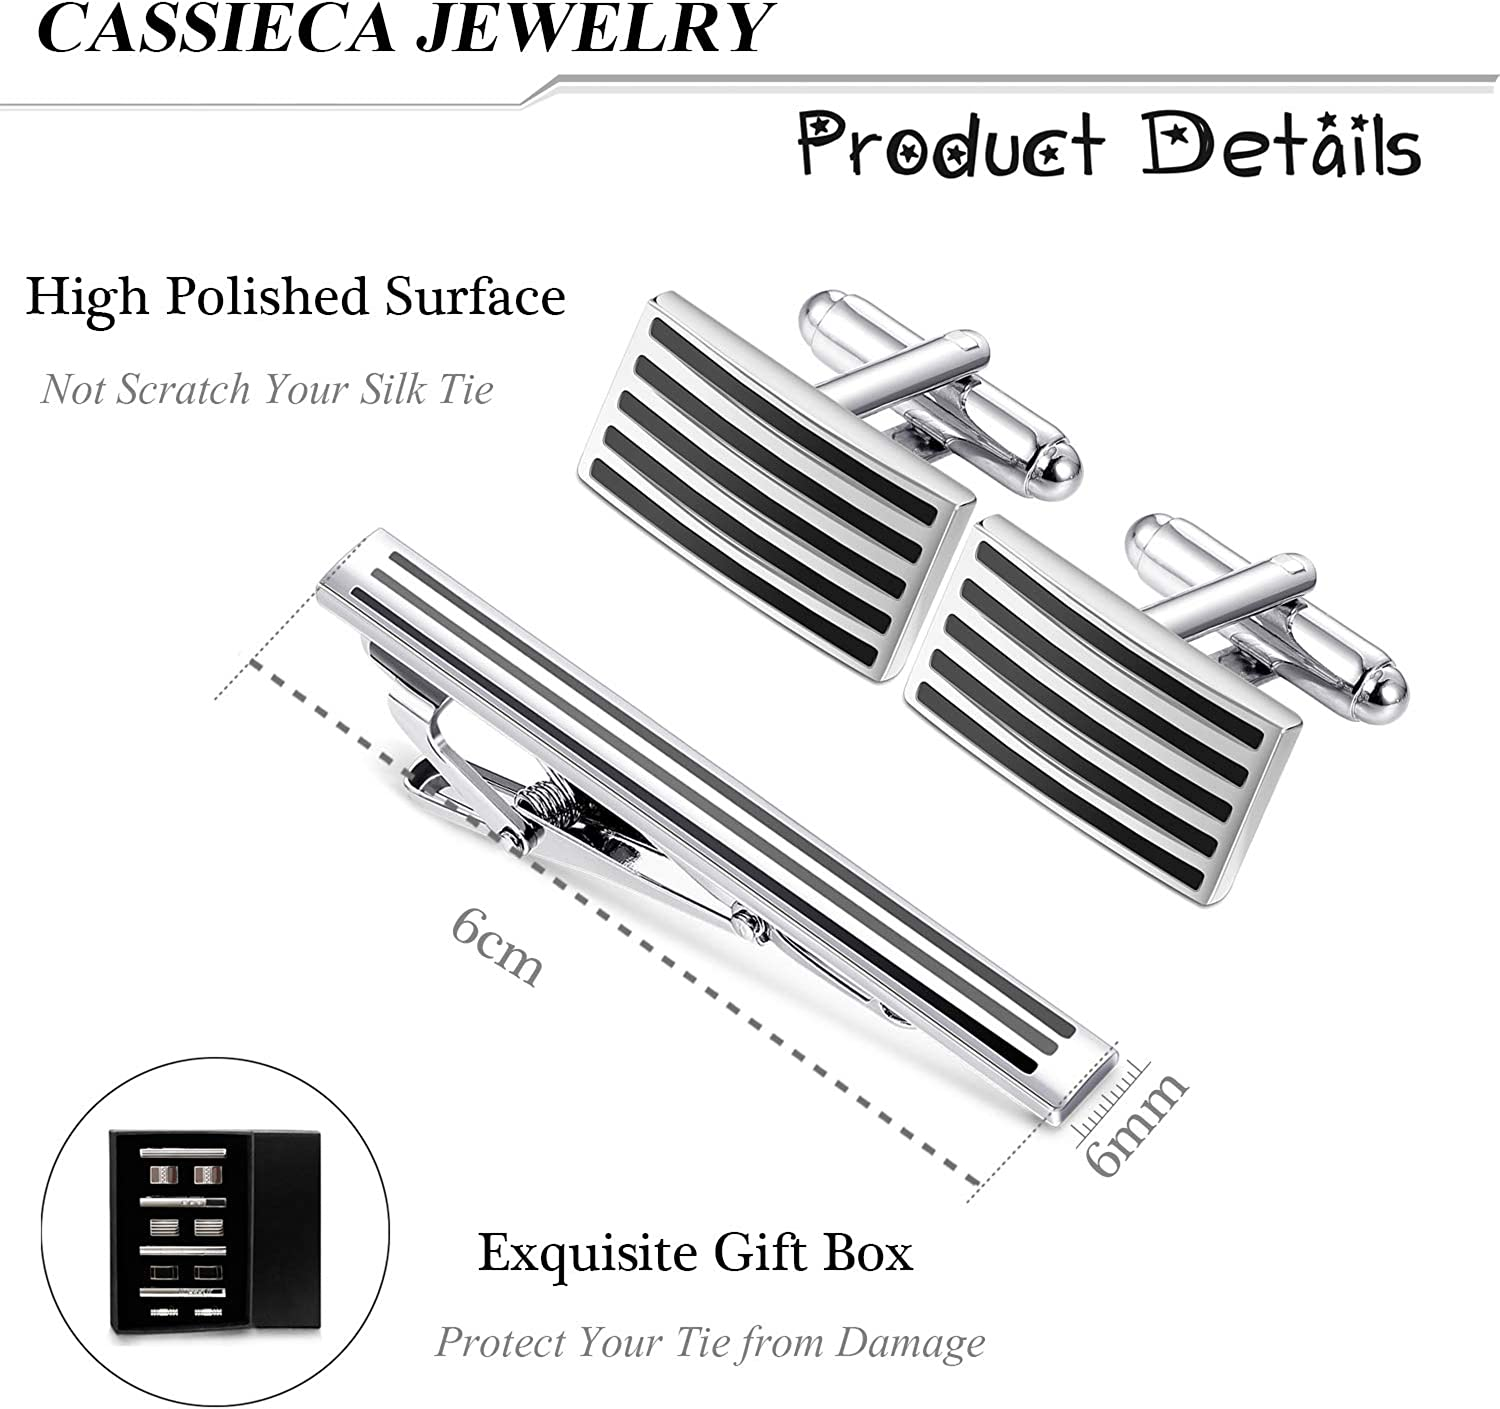 Hicarer 8 Pieces Tie Clip Classic Style Tie Bar Clip with Gift Box for Regular Ties Necktie Wedding Business Clips